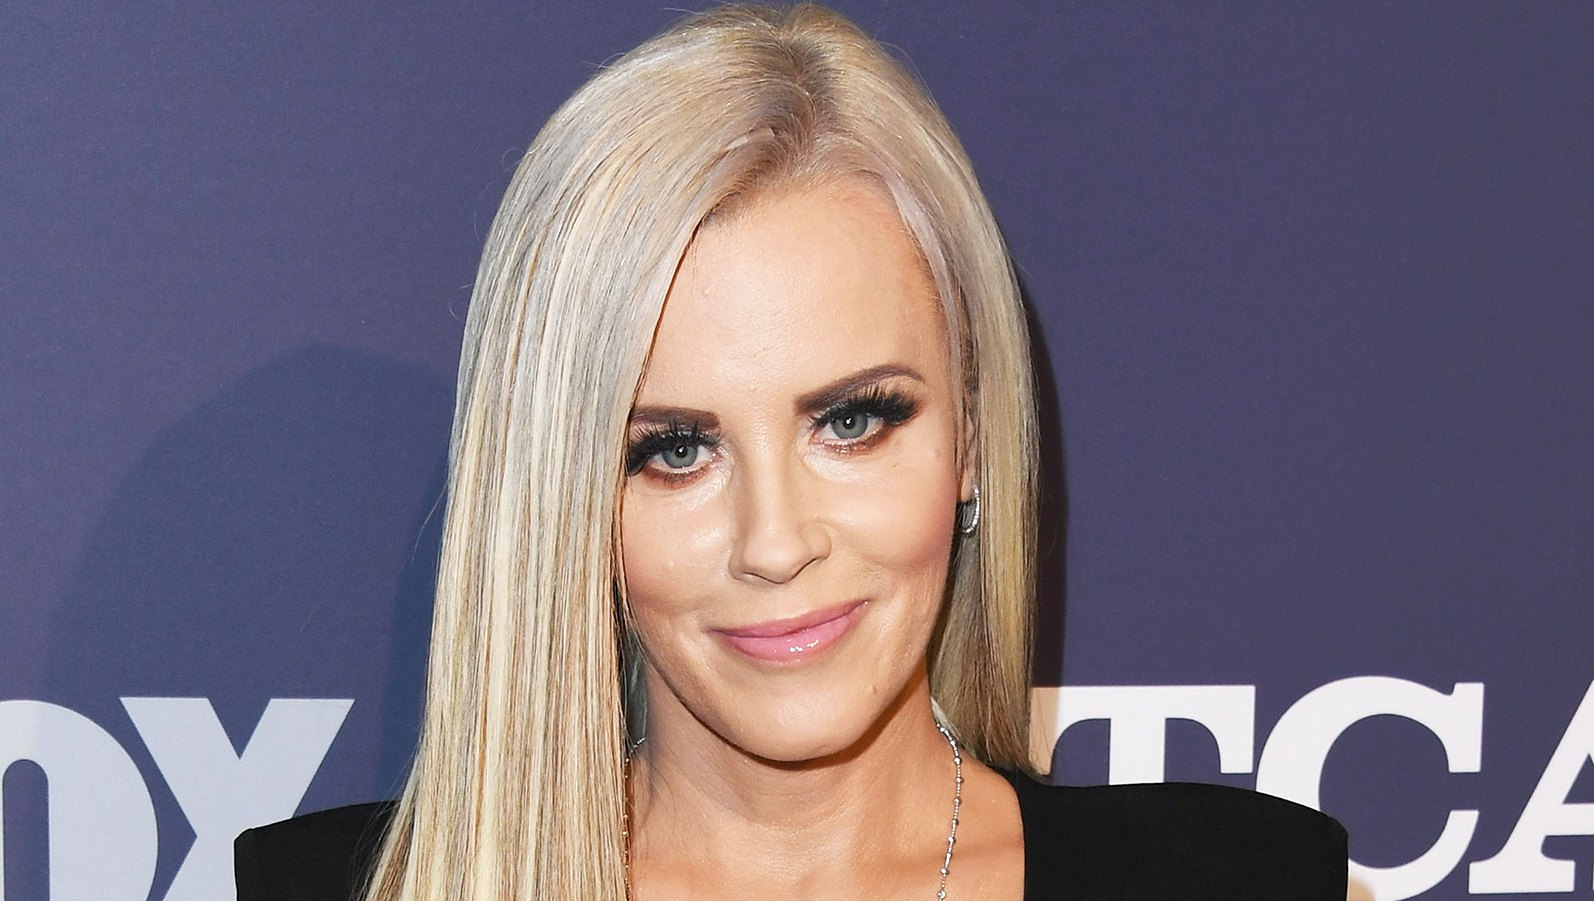 6 Things We Learned About Jenny McCarthy Reveals Horror Stories From 'The View'